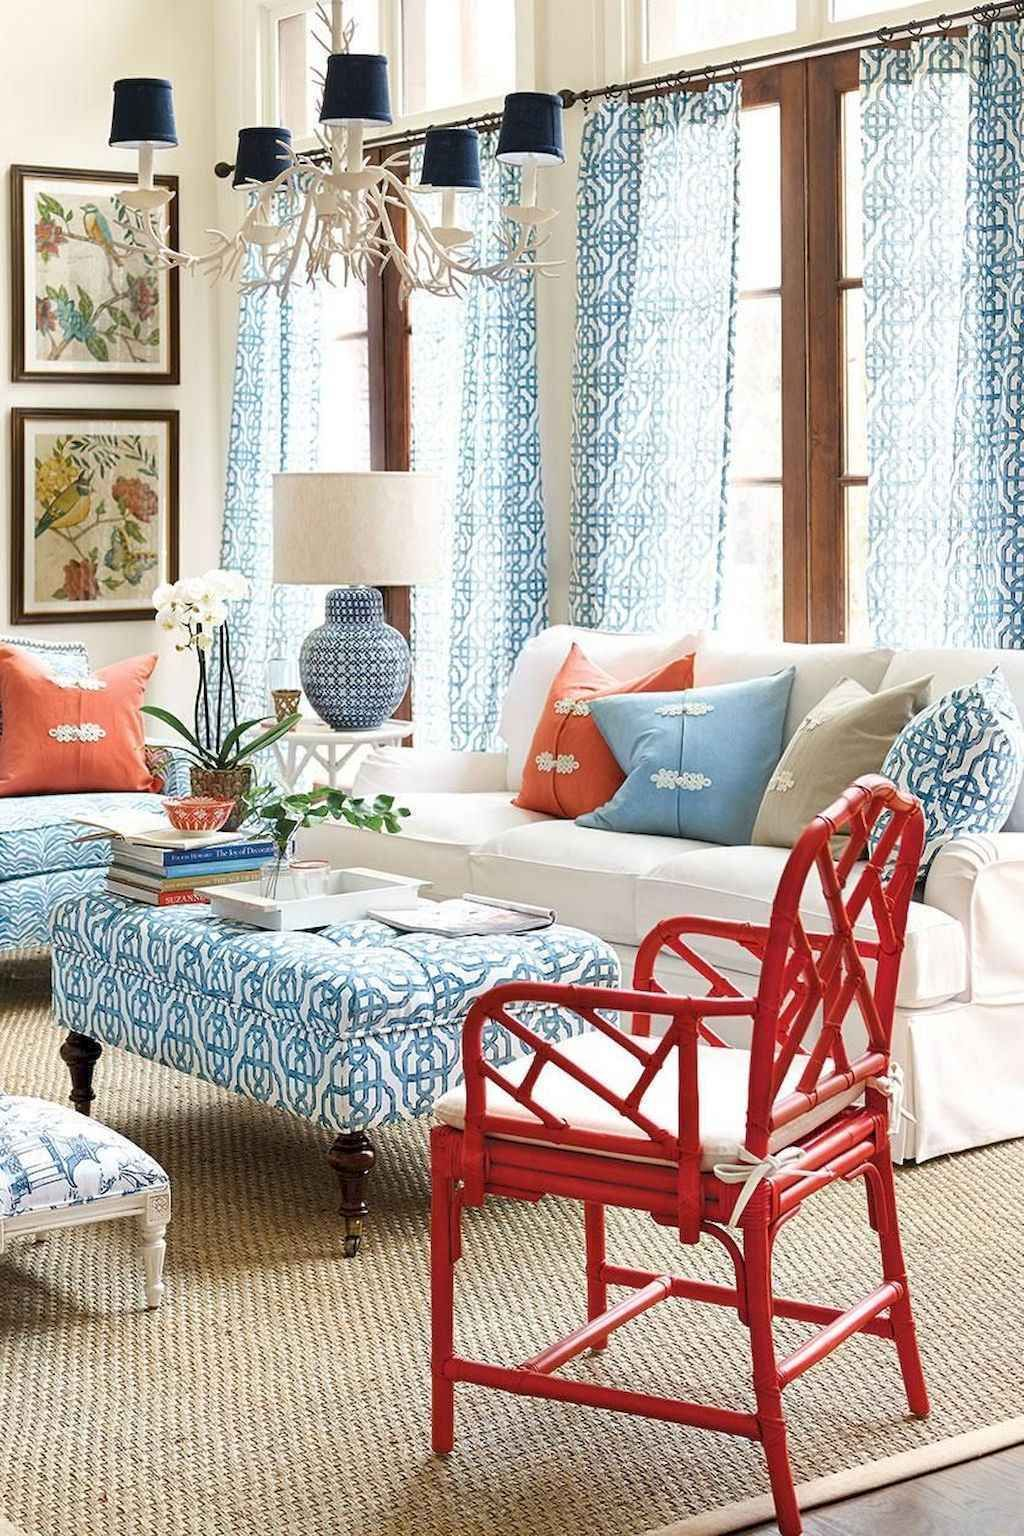 40++ Wall decorations for living room near me ideas